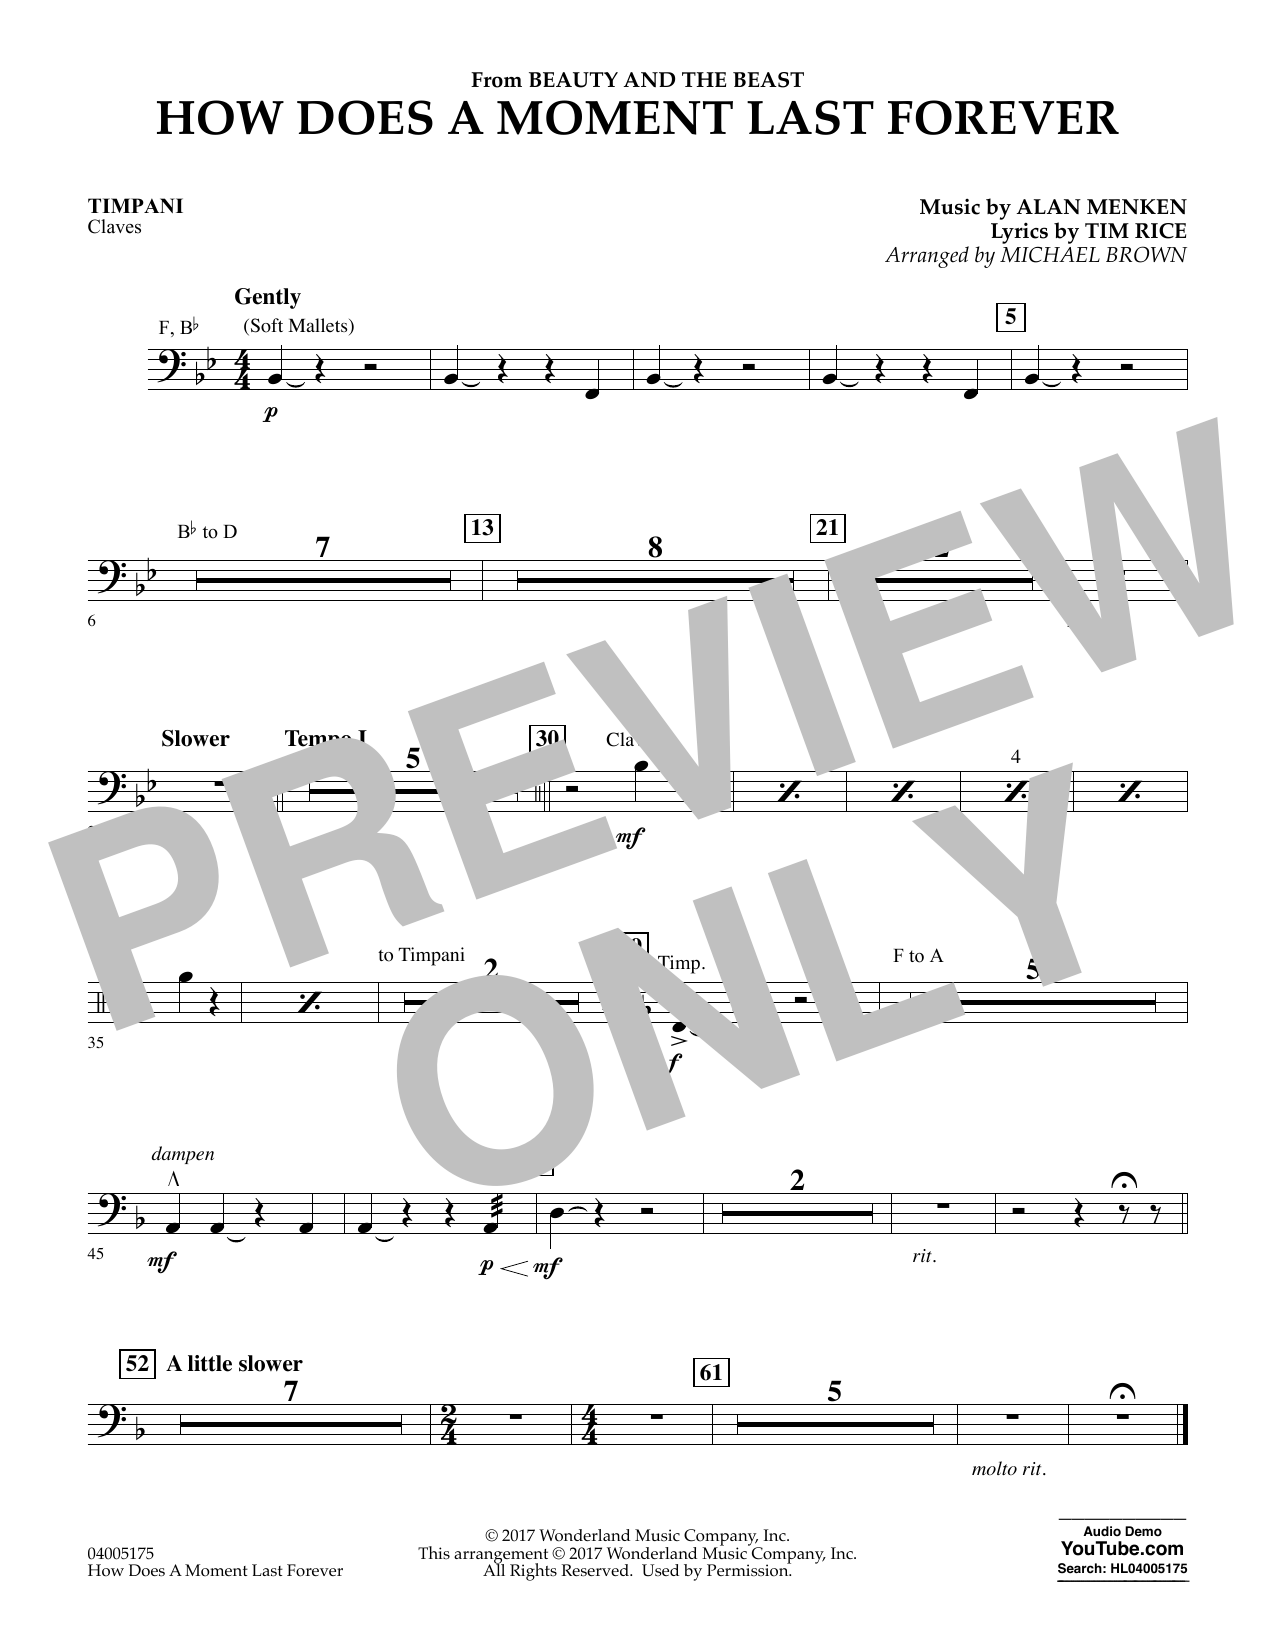 Michael Brown How Does a Moment Last Forever (from Beauty and the Beast) - Timpani sheet music notes and chords. Download Printable PDF.